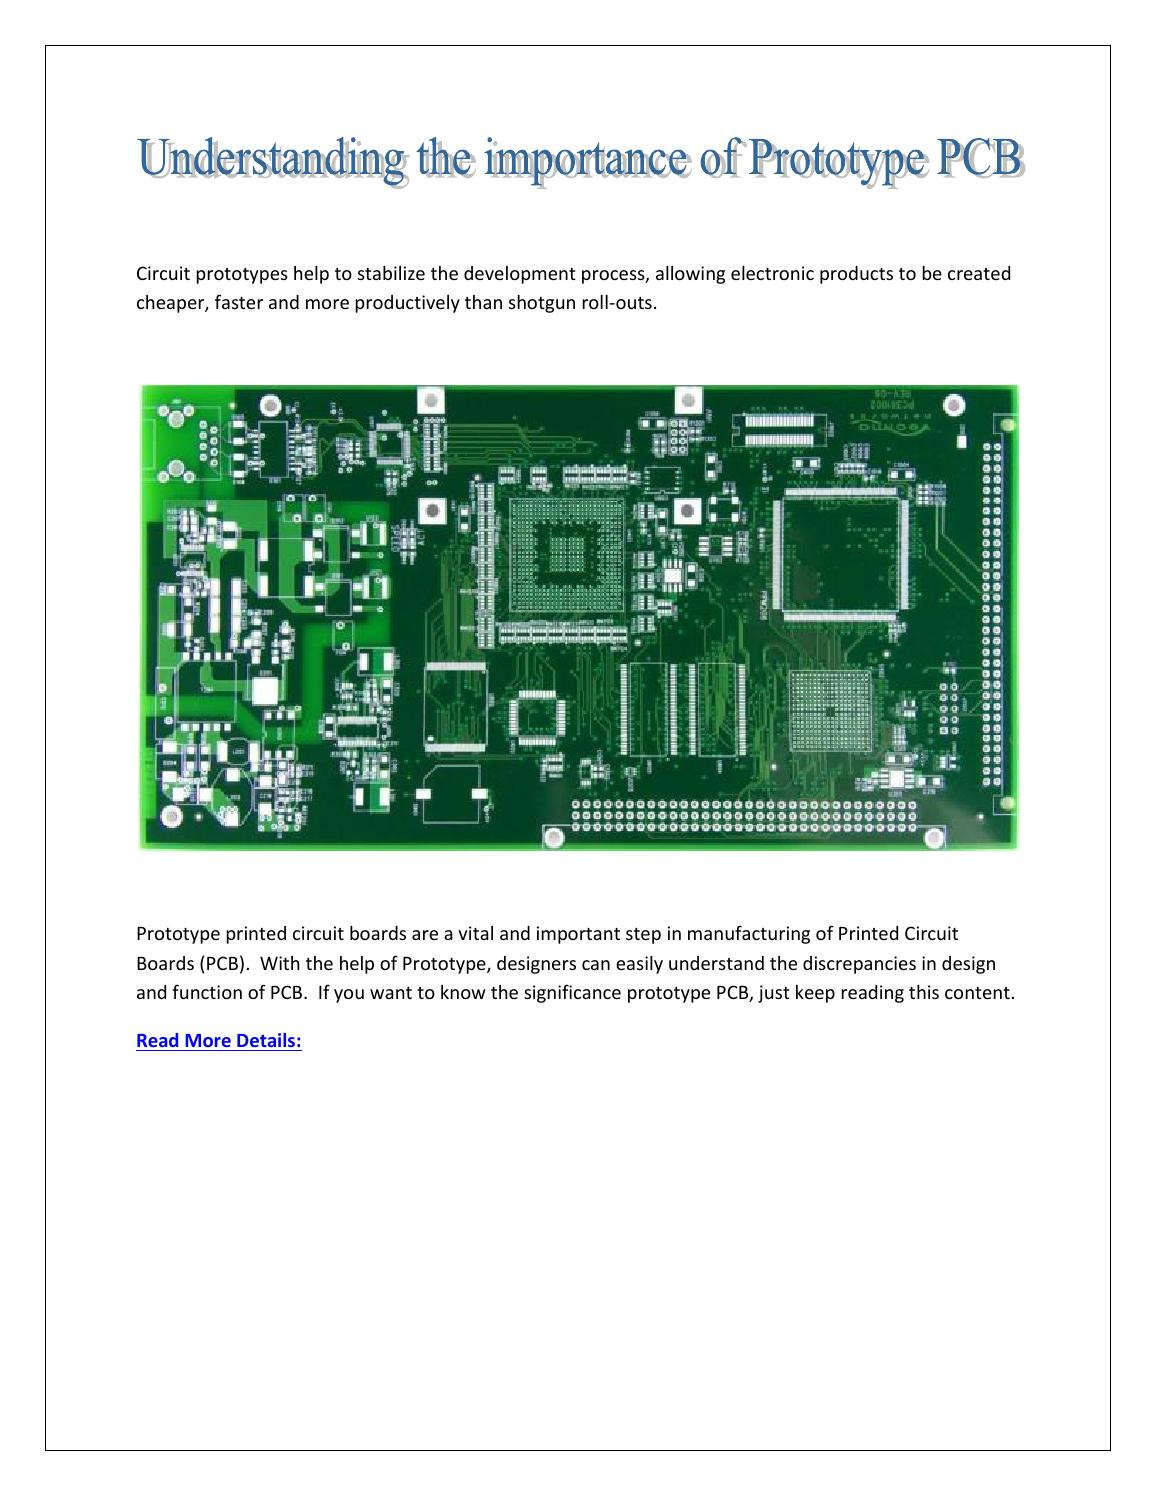 Understanding The Importance Of Prototype Pcb By High Quality Electronic Printed Circuit Board Design Manufacturer Services Issuu